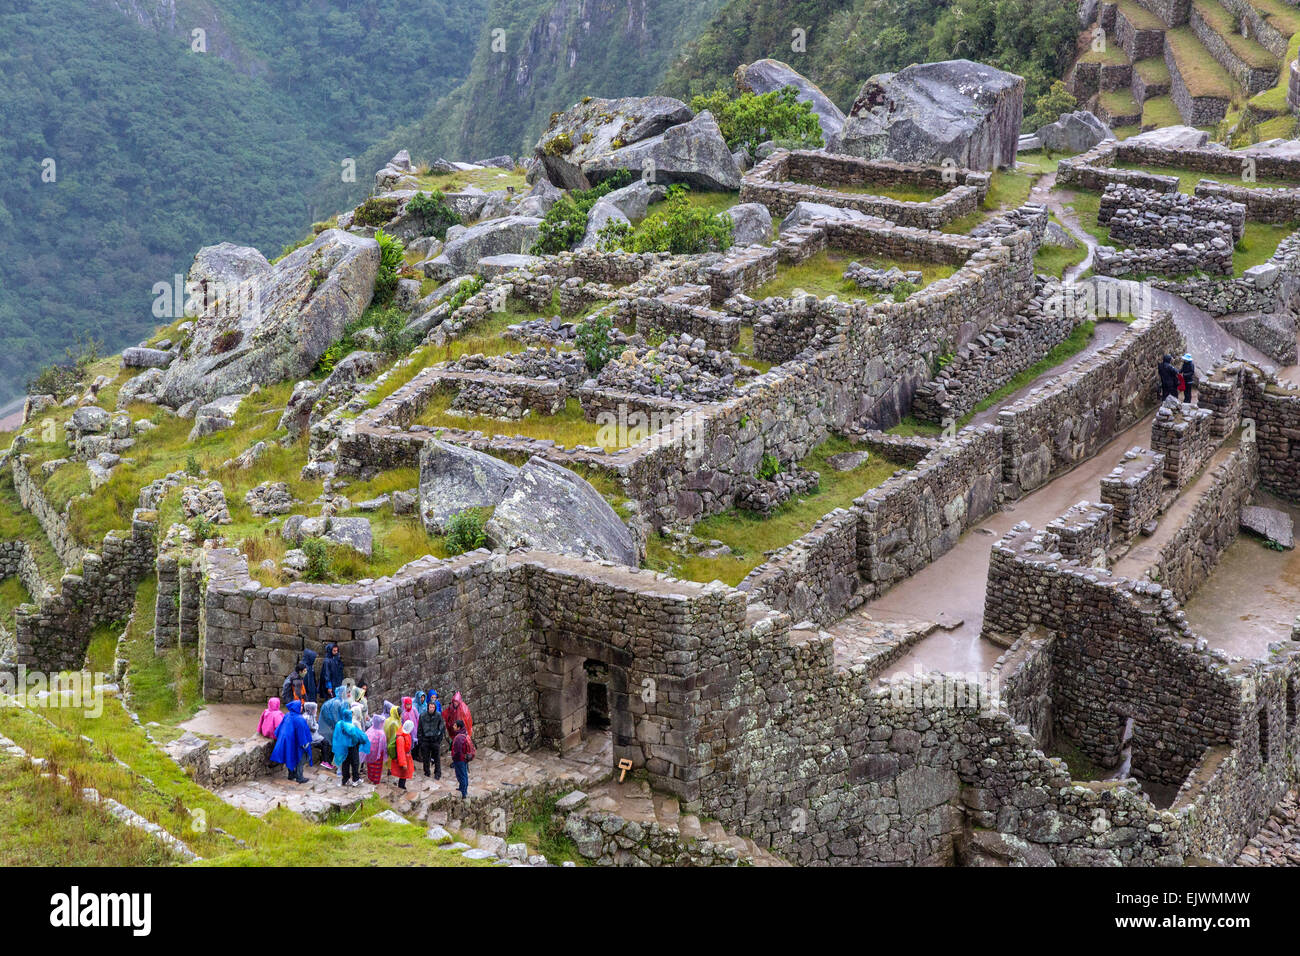 Peru, Machu Picchu.  Early Morning Light Rain Falling.  Tourists in Multicolored Ponchos About to Enter Main Doorway Stock Photo